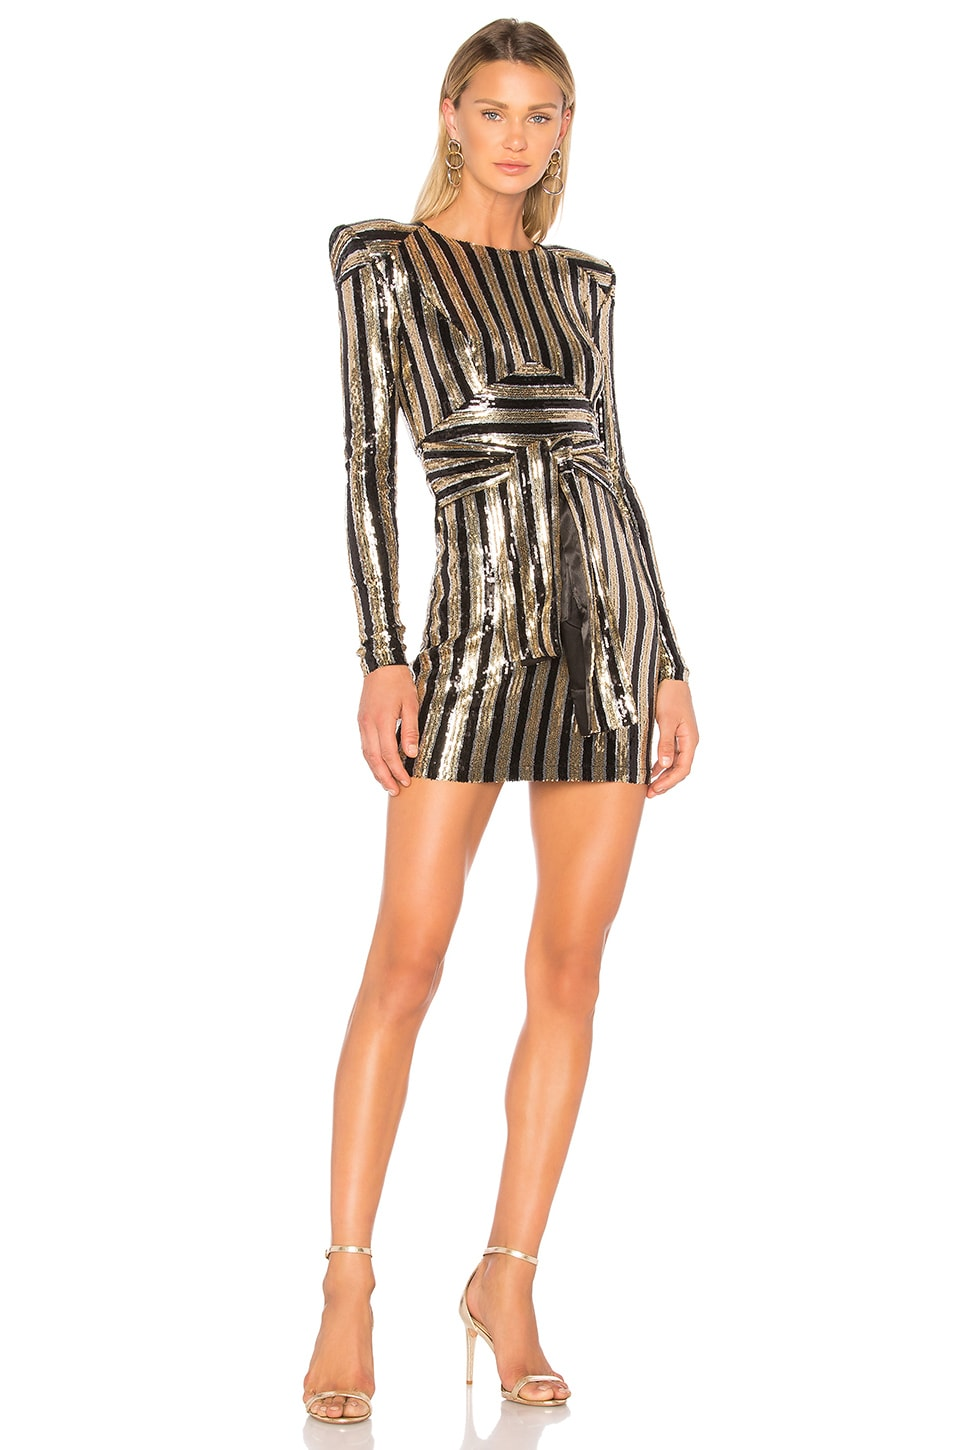 Zhivago Take That To The Bank Dress in Black & Gold Stripe